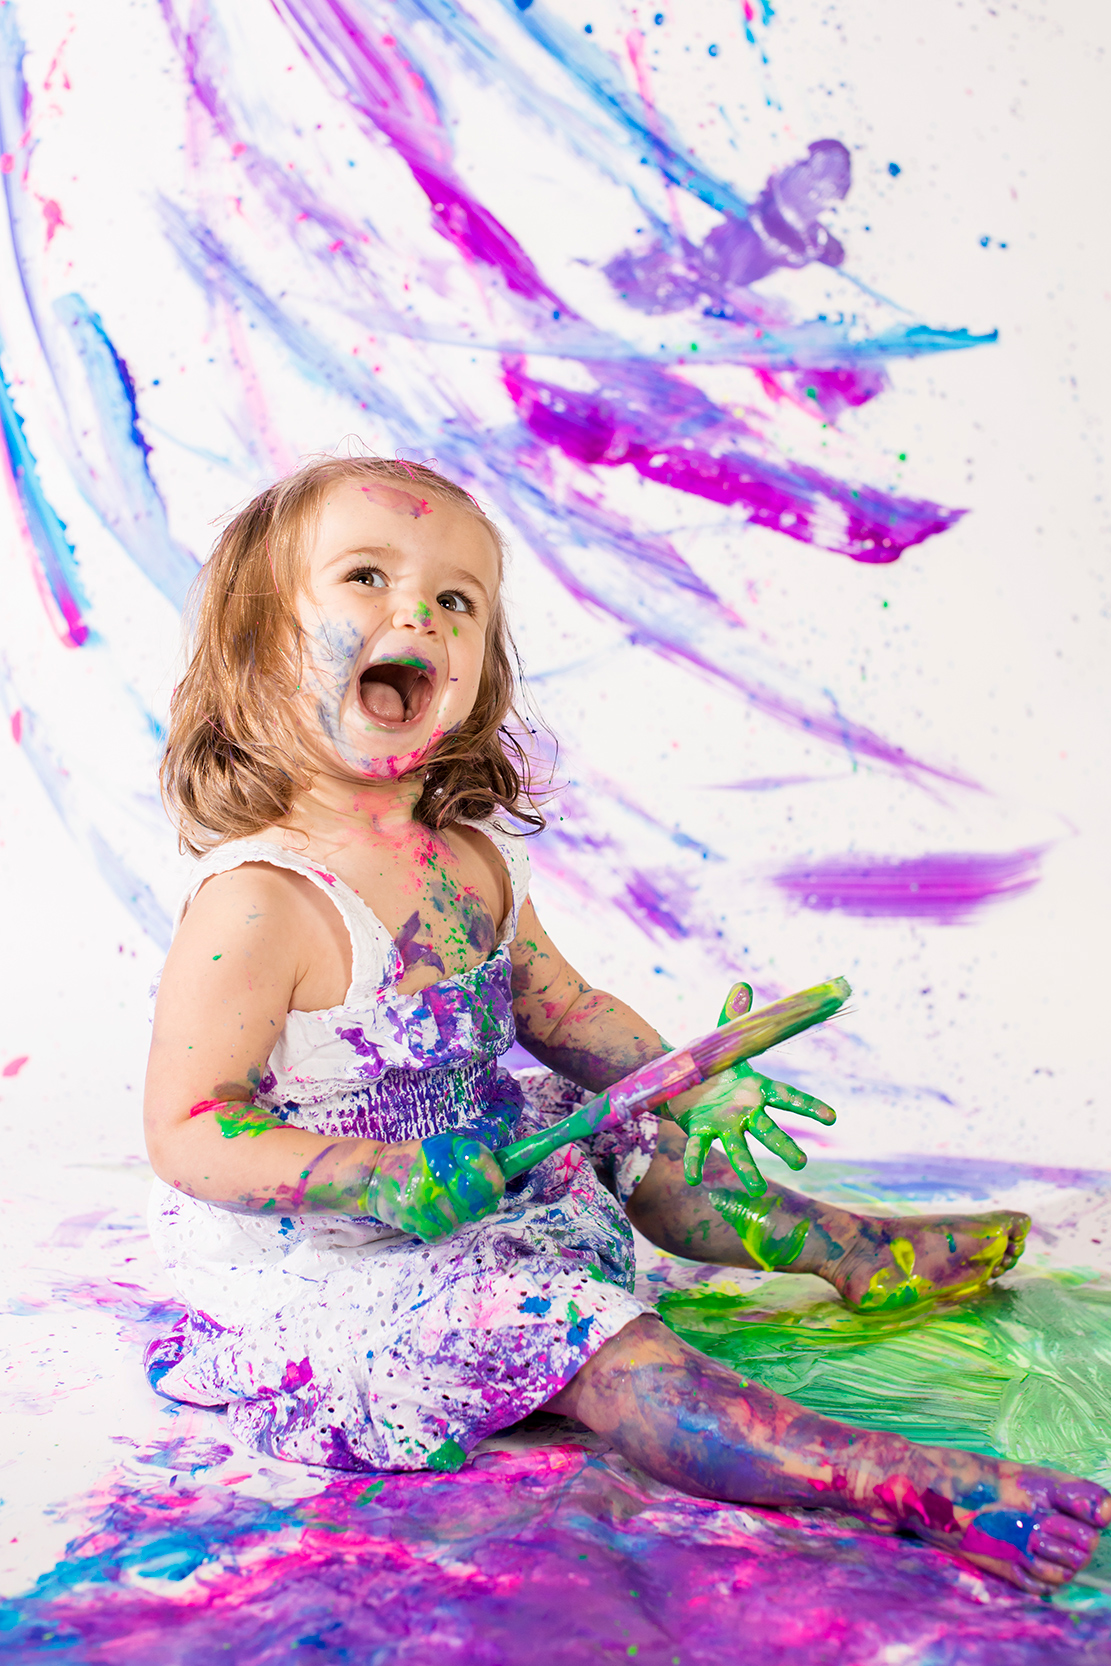 Toddler Painting Studio Shoot - Image Property of www.j-dphoto.com